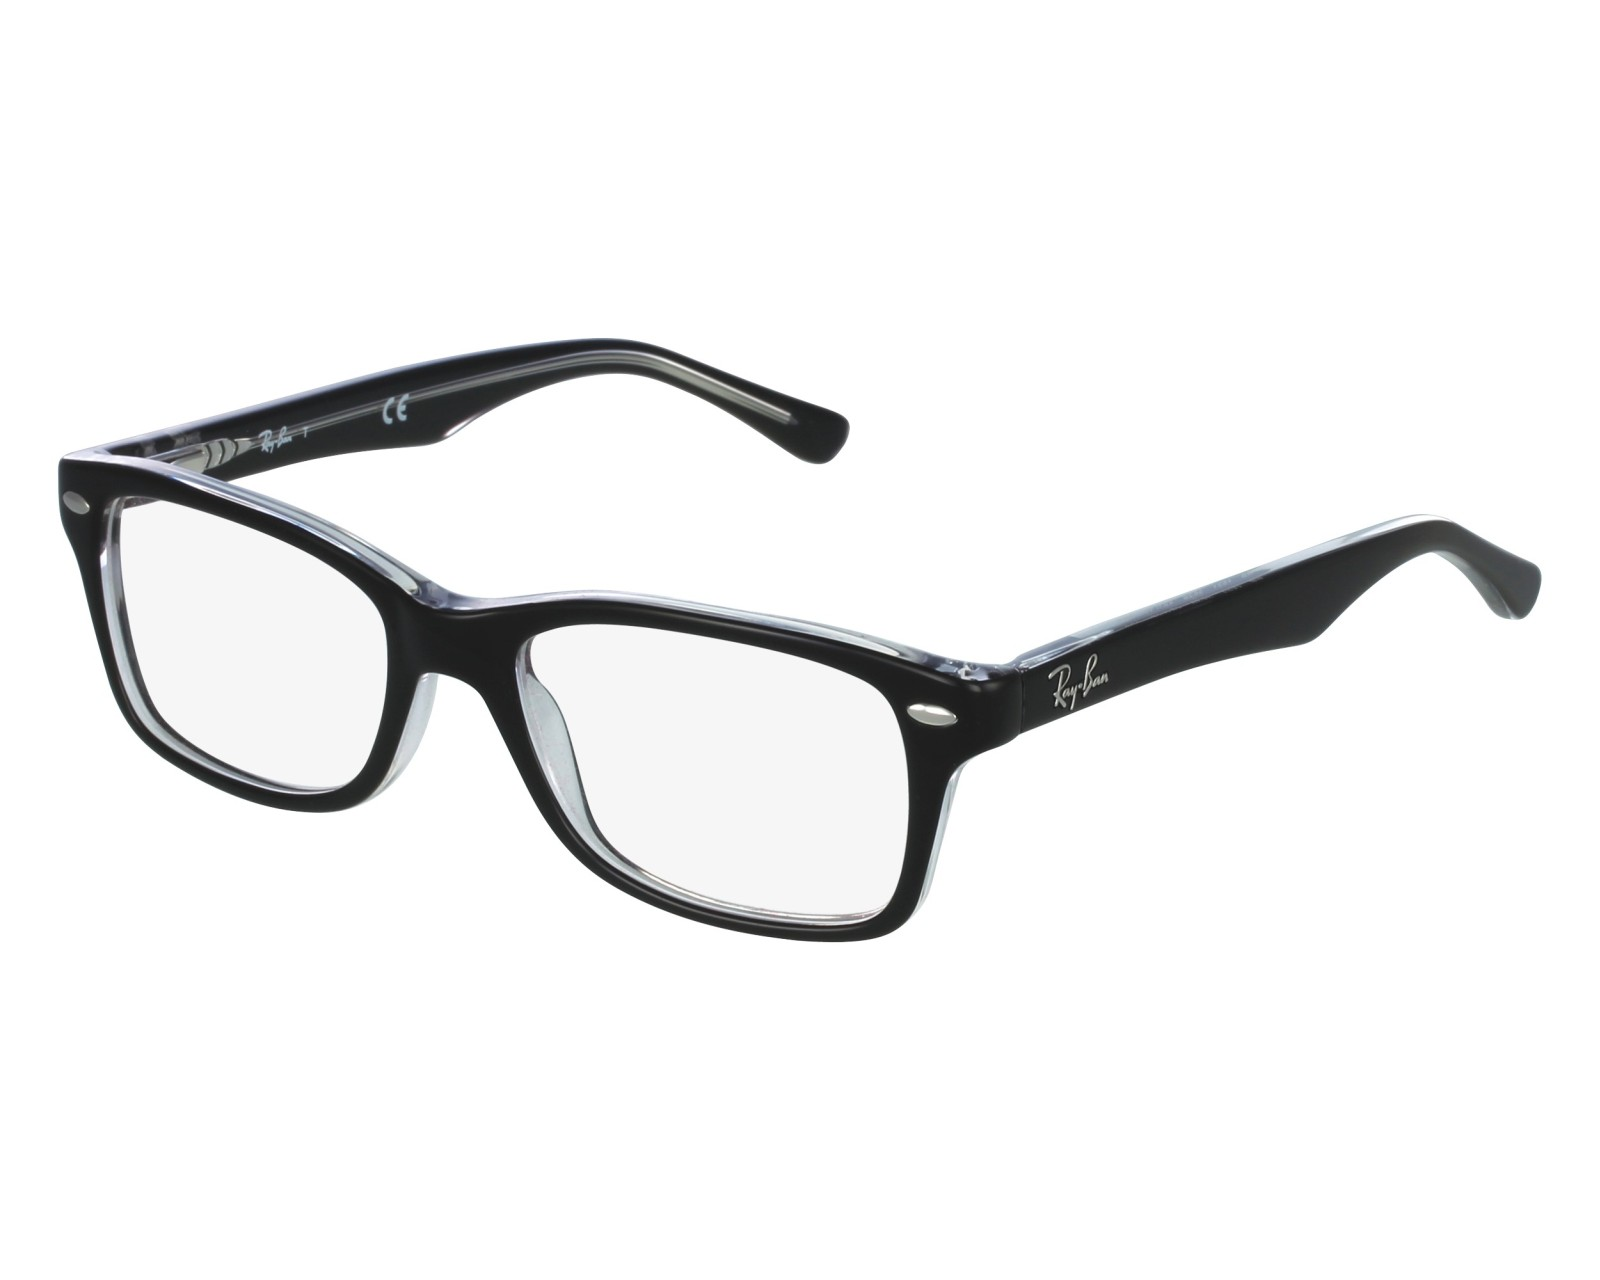 f7781c81e52 eyeglasses Ray-Ban RY-1531 3529 48-16 Black Crystal front view